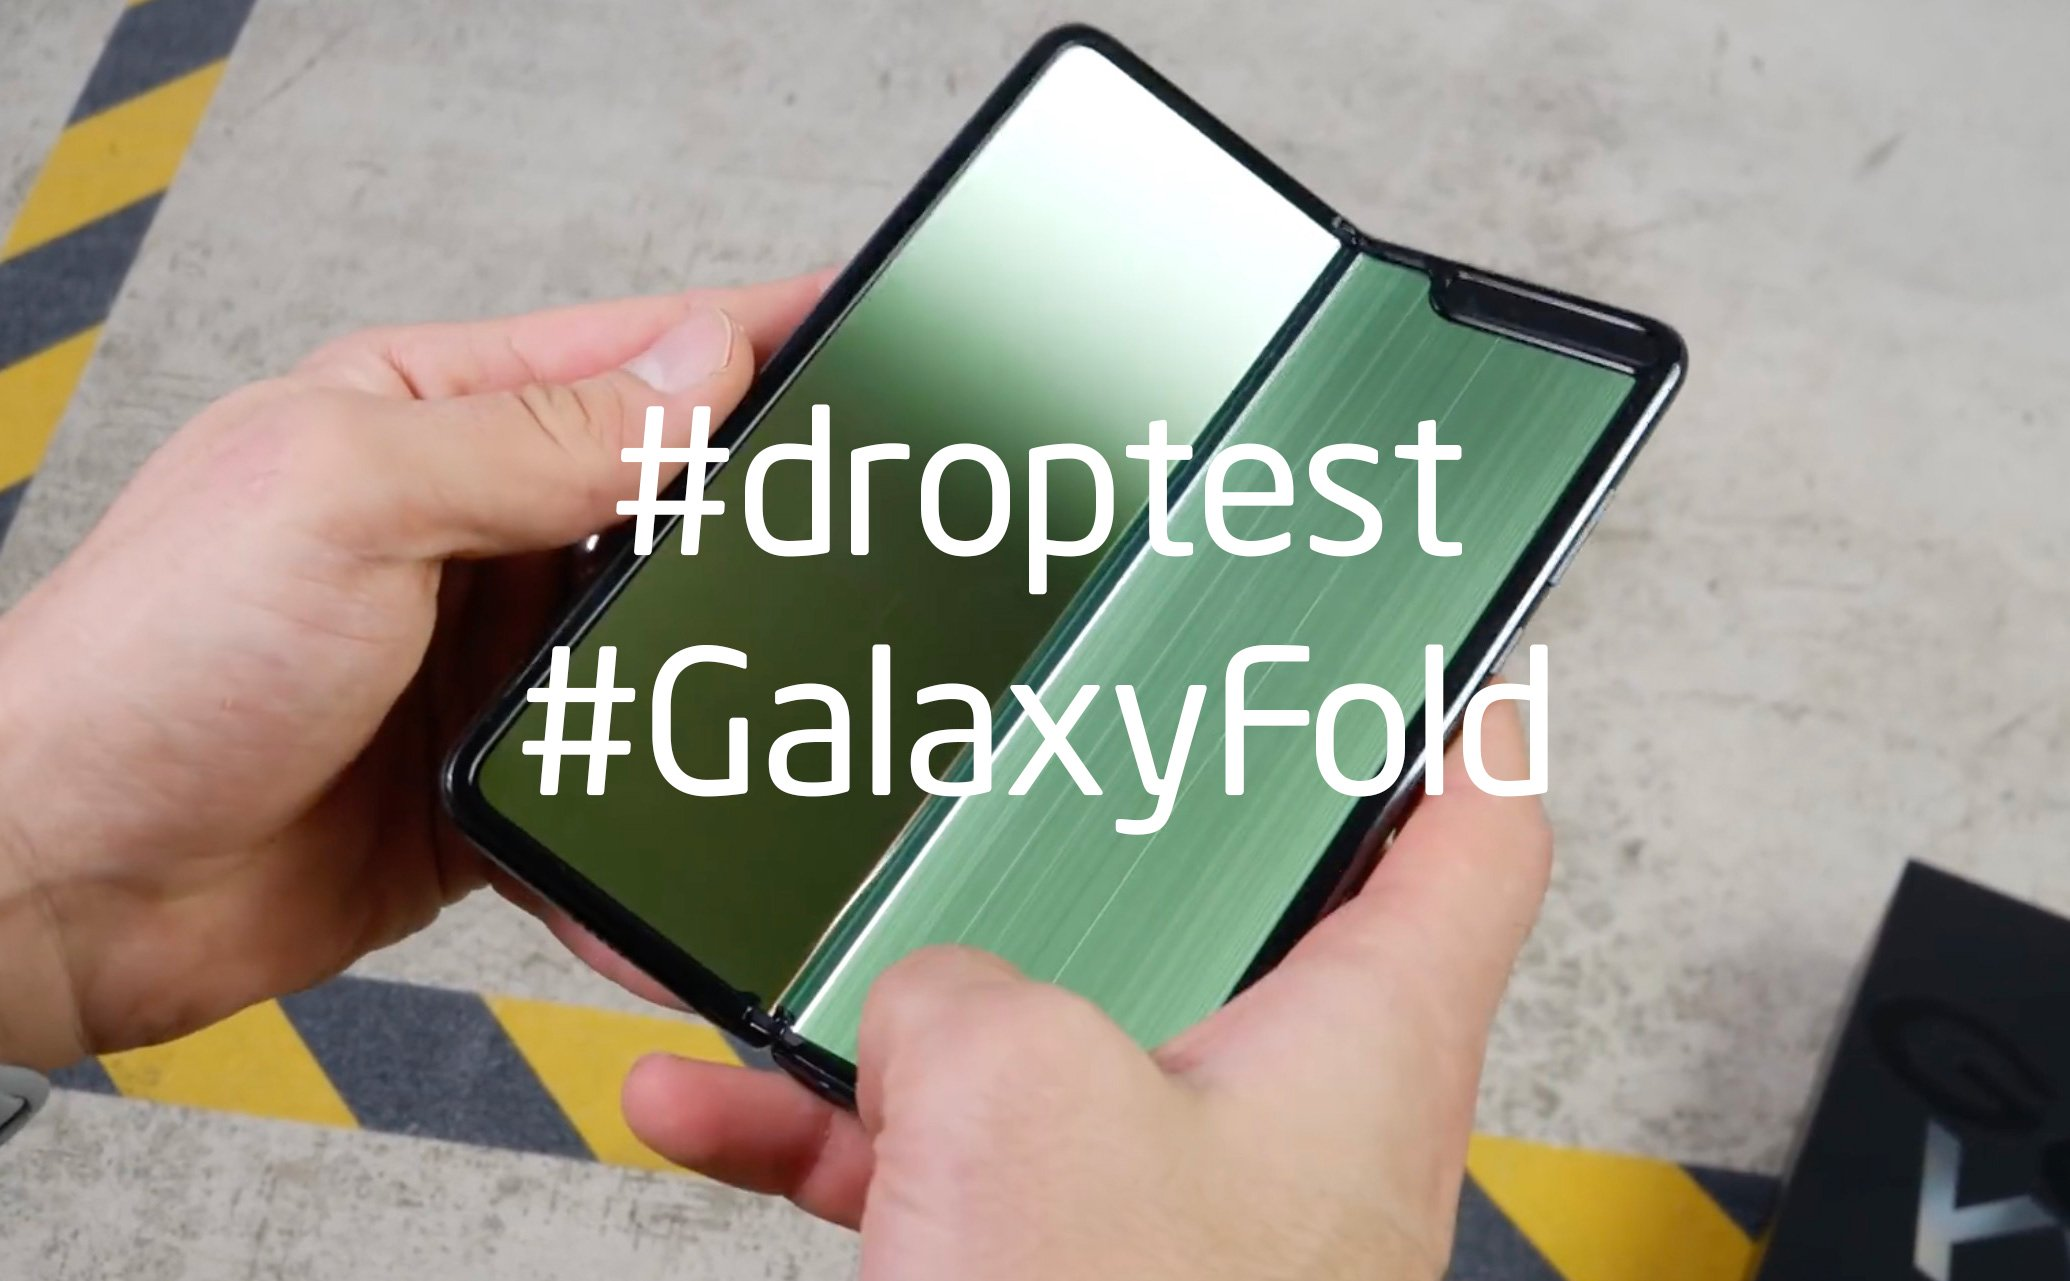 Droptest Galaxy Fold: very durable